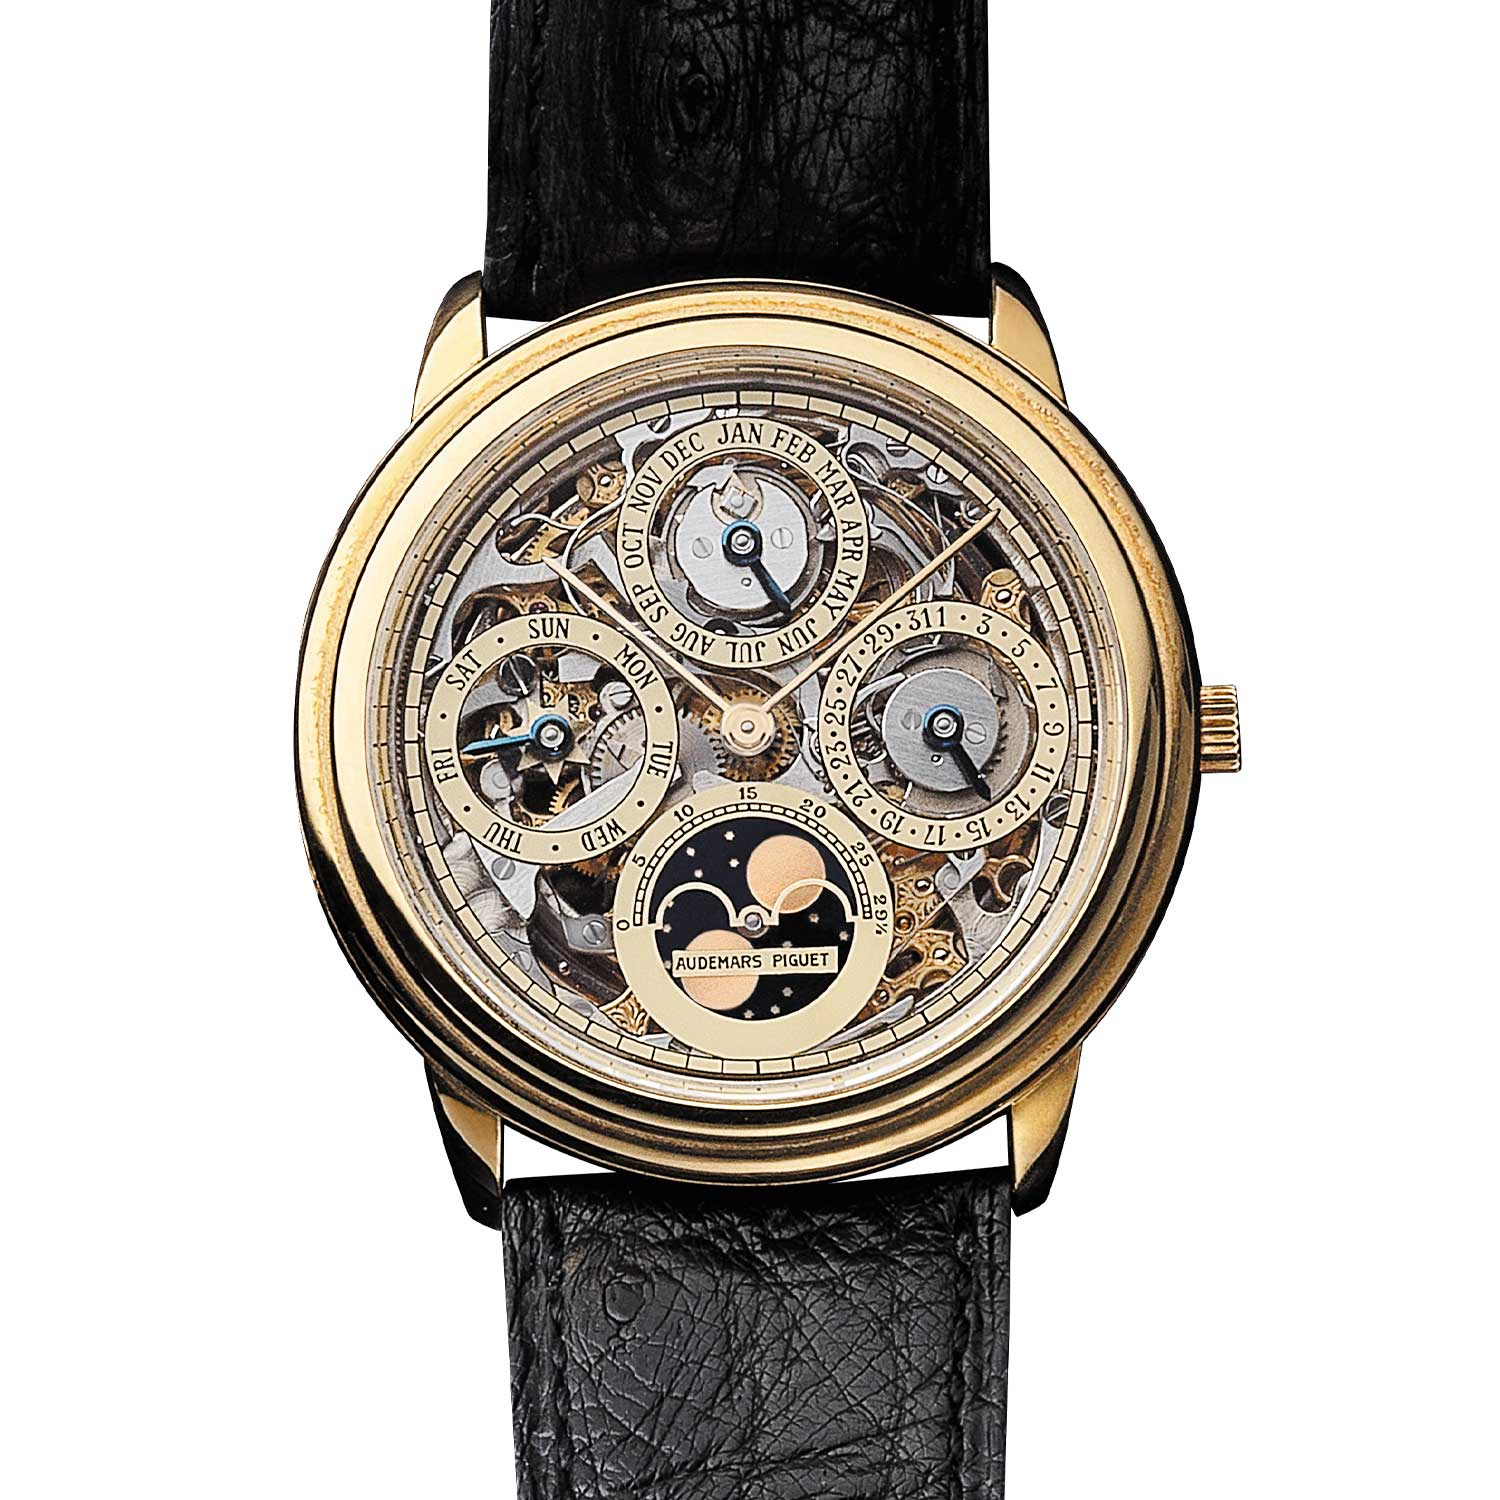 Openworked perpetual calendar. Model 25668BA (205 examples, of which 94 in yellow gold). Movement No 294476, case No C51512. Calibre 2120/2800. Movement made in 1988, watch sold in 1989. Audemars Piguet Heritage Collection, Inv. 392.